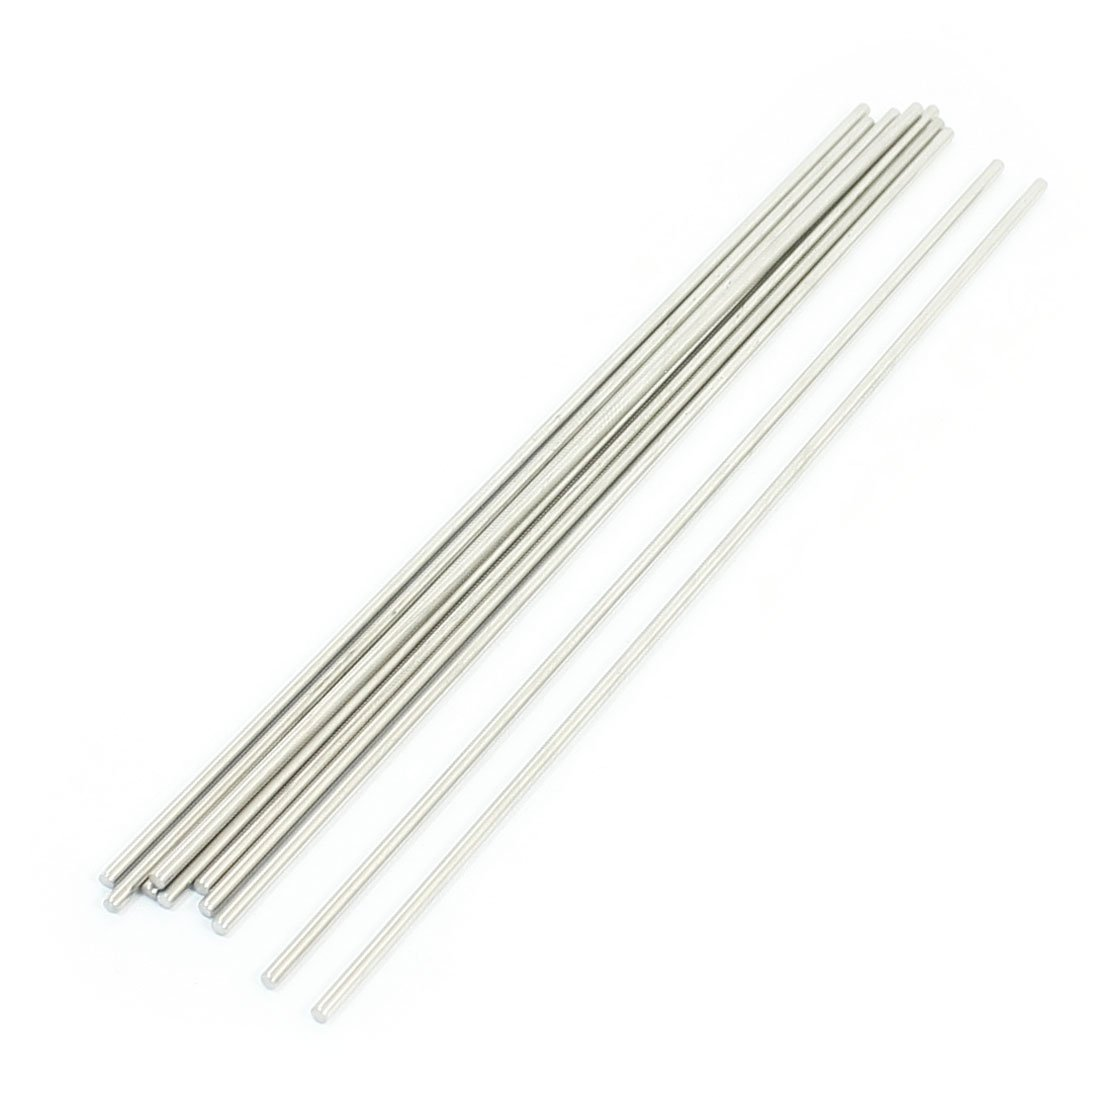 10pcs Silver Tone Stainless Steel 170mmx2.5mm Round Rod Axles for Toys uxcell a14061900ux0125